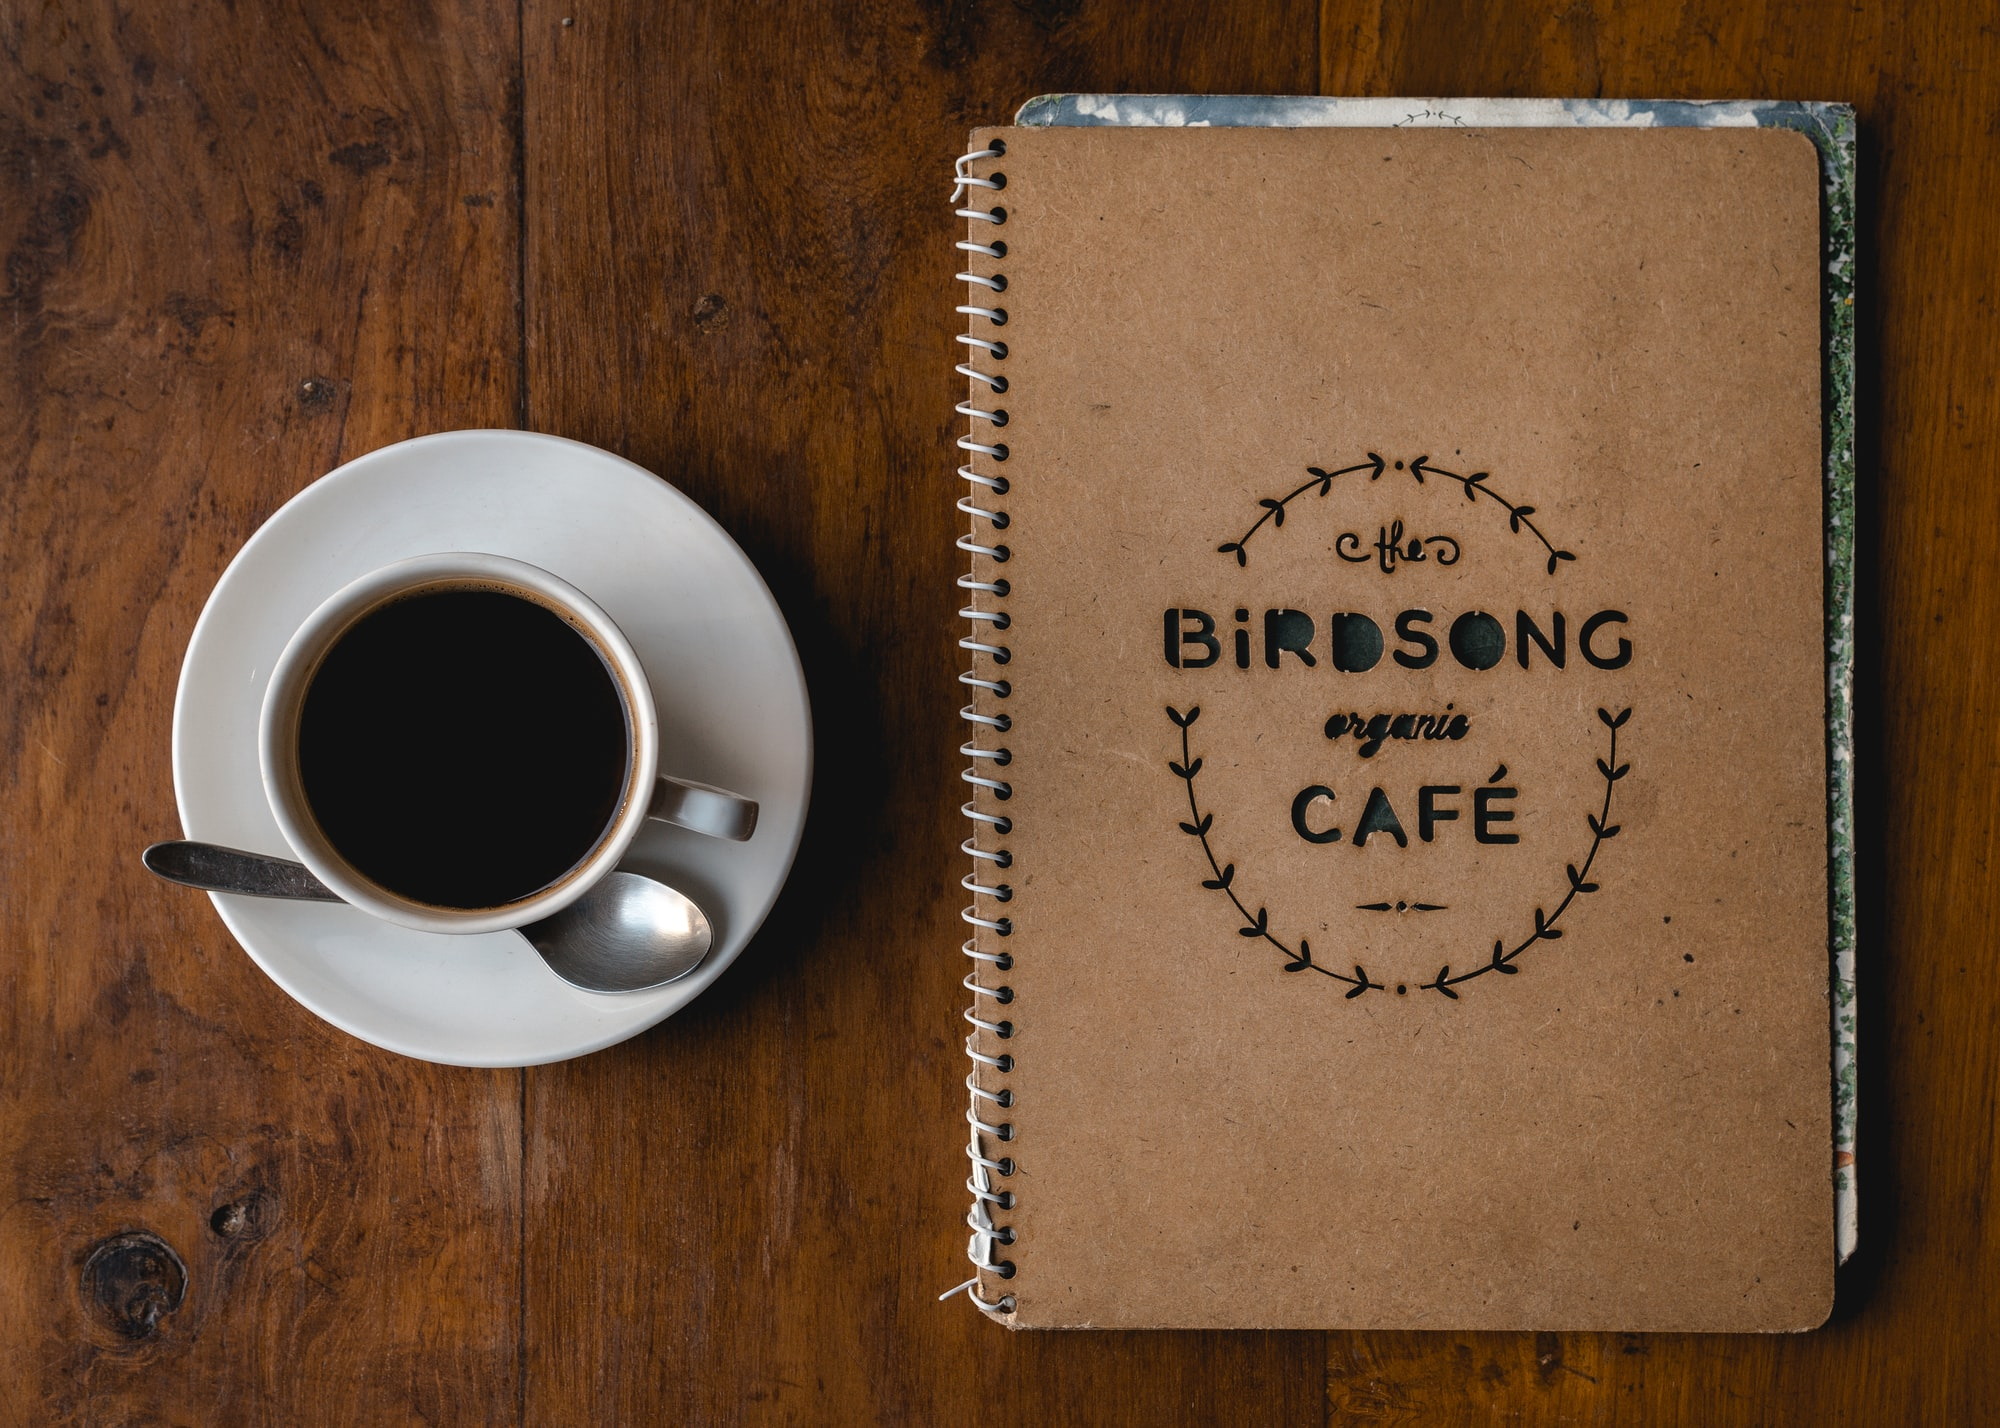 Just experience the ambience and the atmosphere at Birdhouse- The Organic Cafe in Mumbai, India. The calming music, in addition to a mild arabica brew gets your mind right in that sweet cozy spot to work.